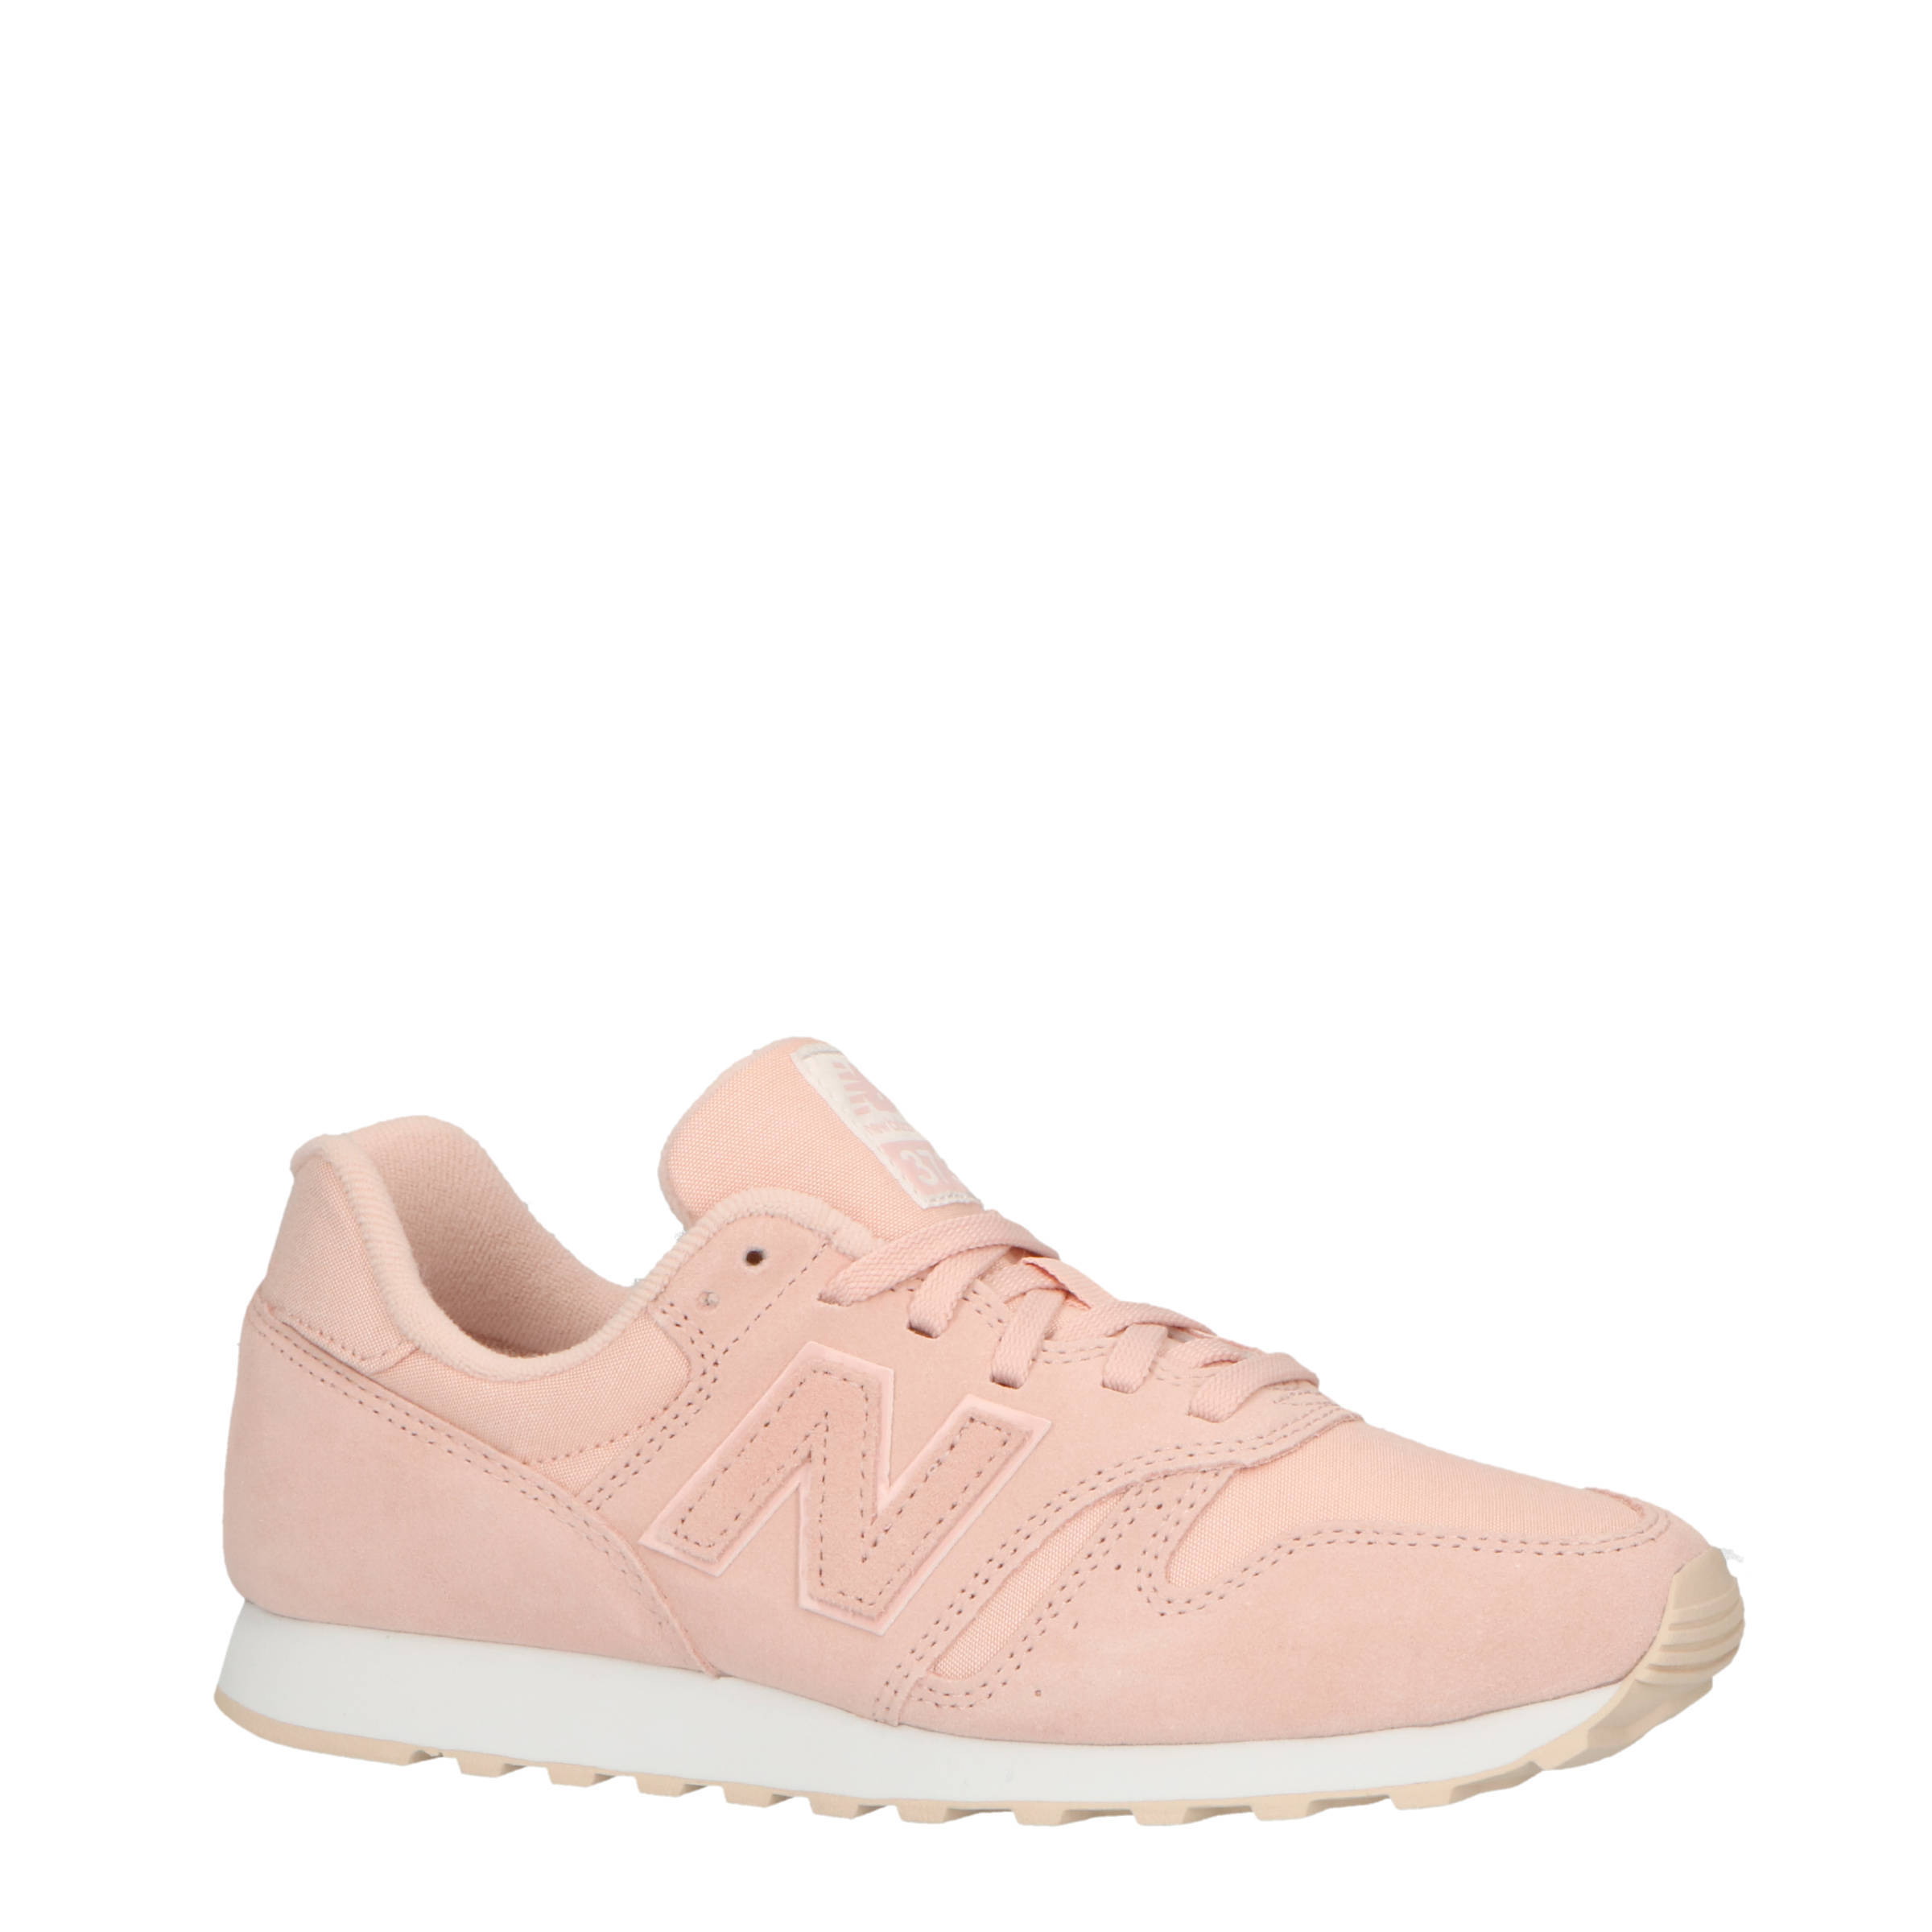 roze new balance 373 promo code for 41732 46ca3